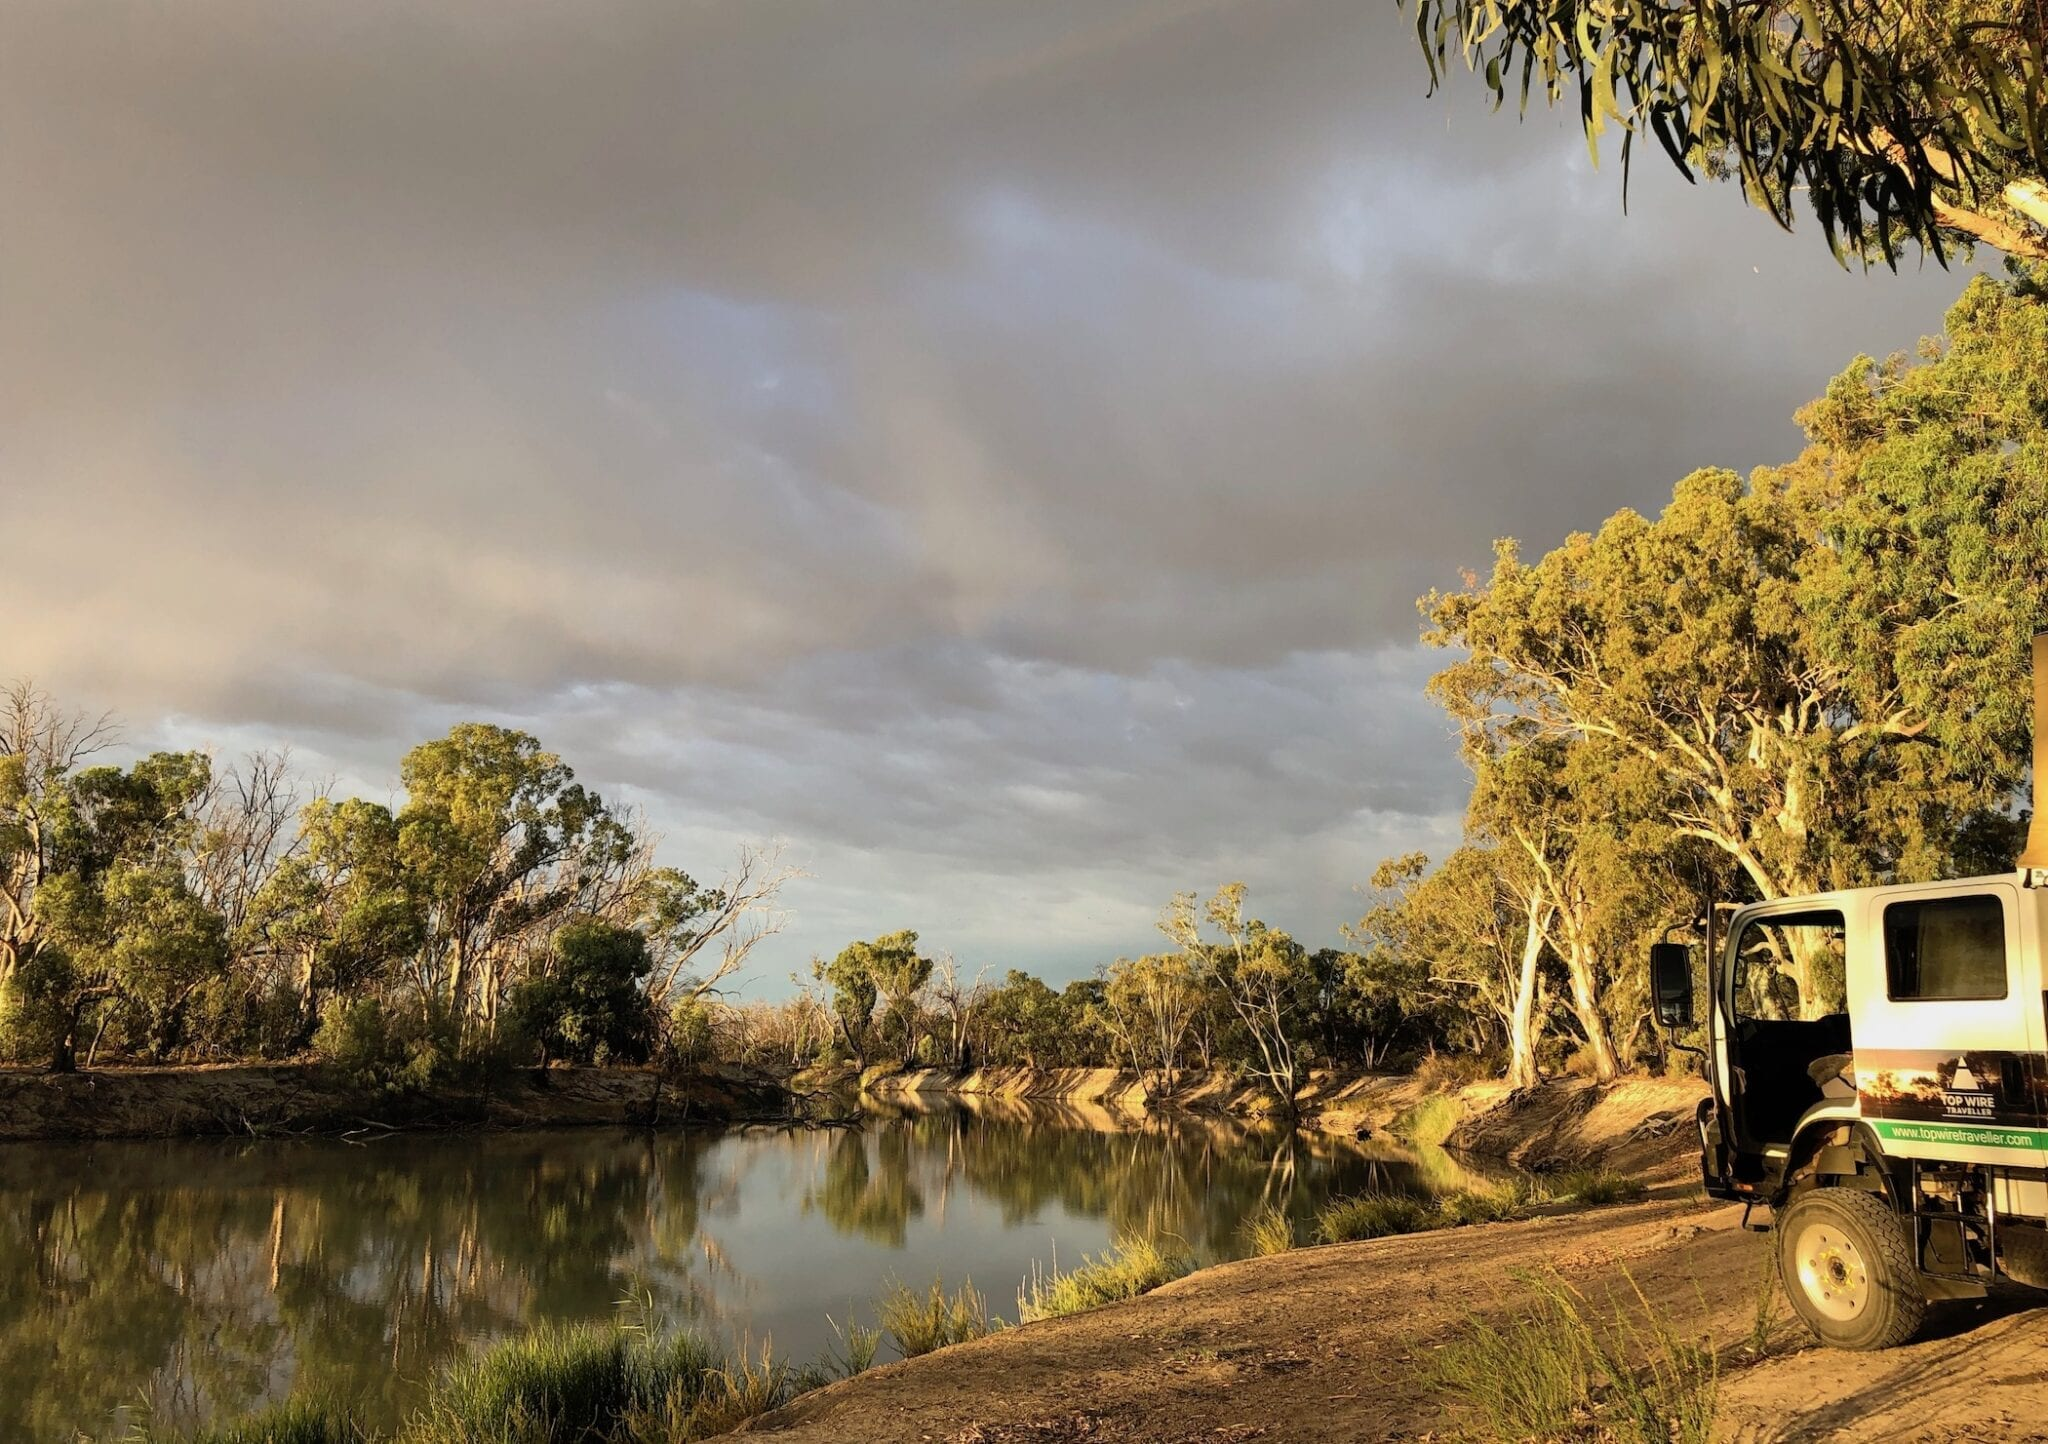 Camping On The Murray River, early morning light with dark clouds approaching.